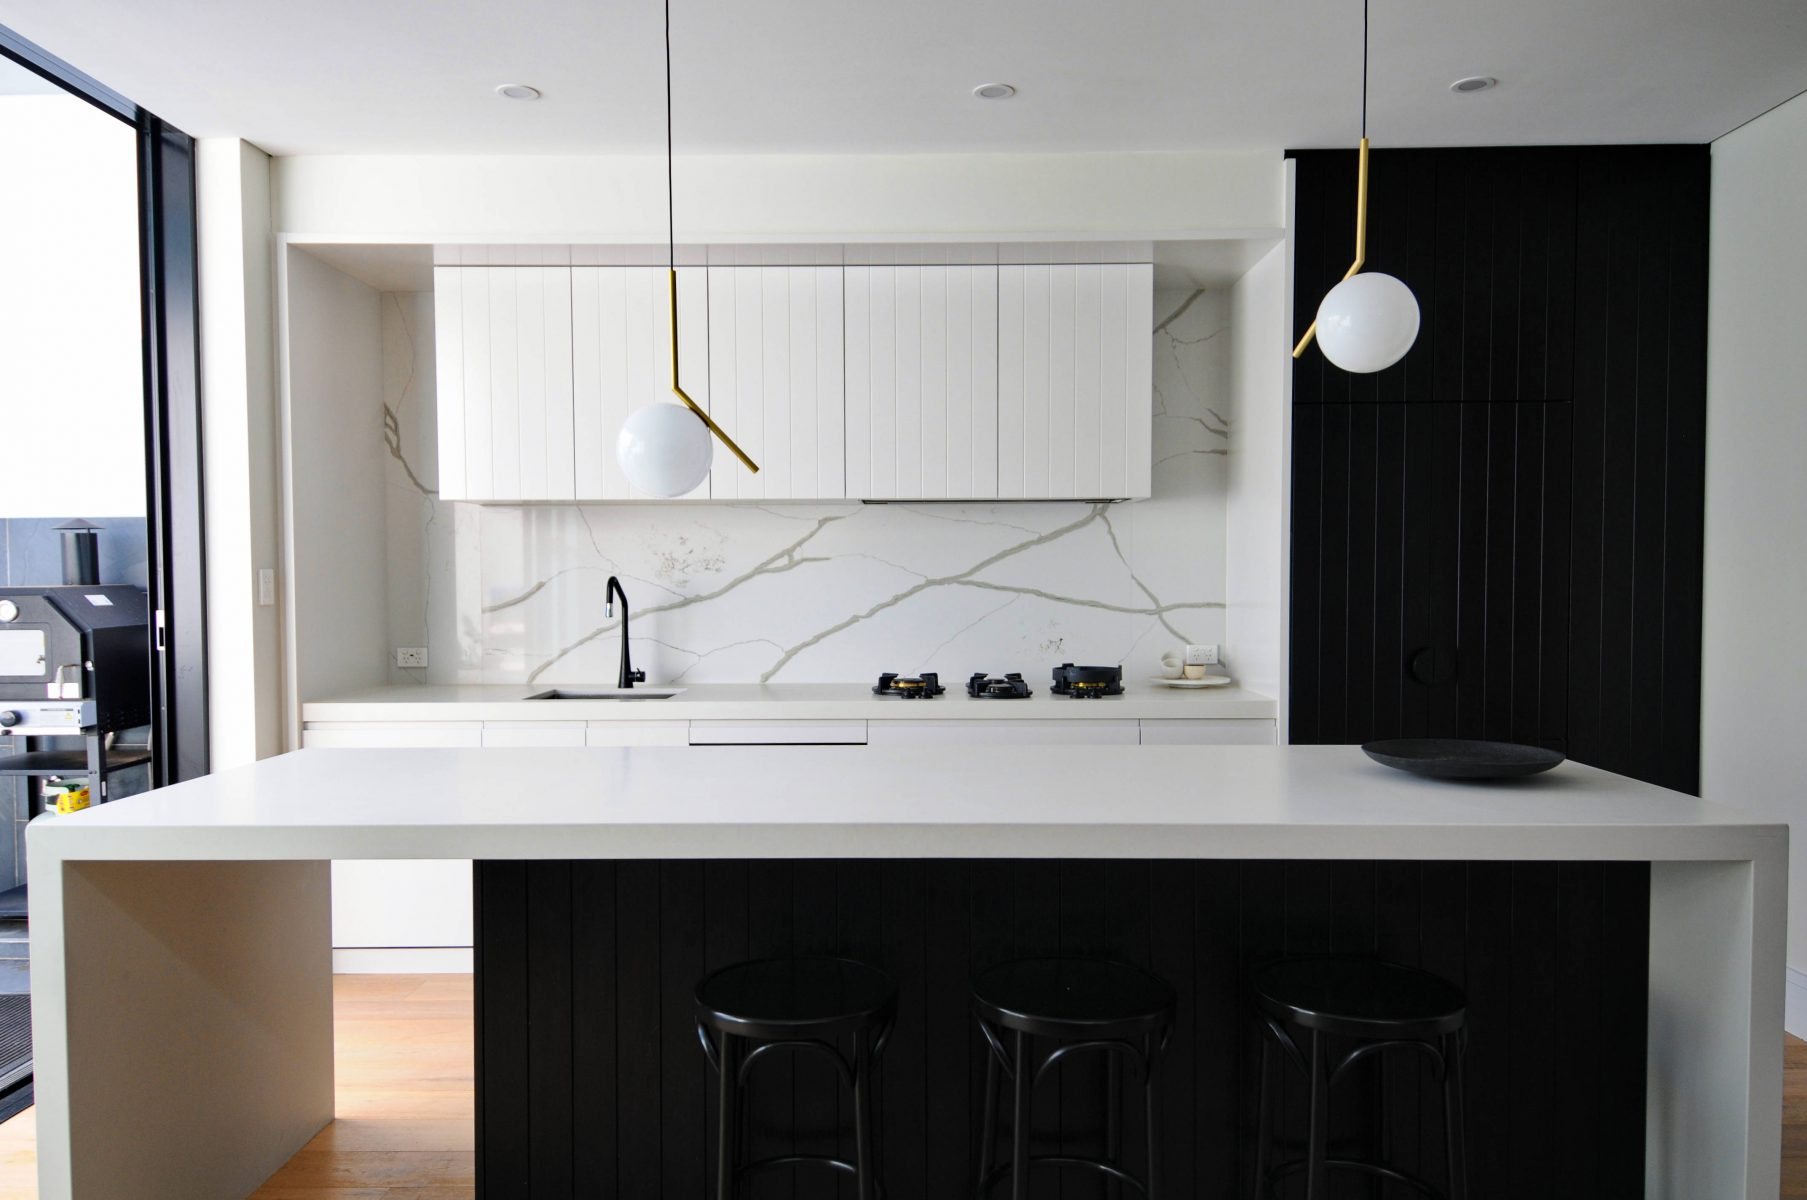 Pleasing Custom Kitchen Renovations Joinery Sydney Botany Dsk Home Interior And Landscaping Thycampuscom